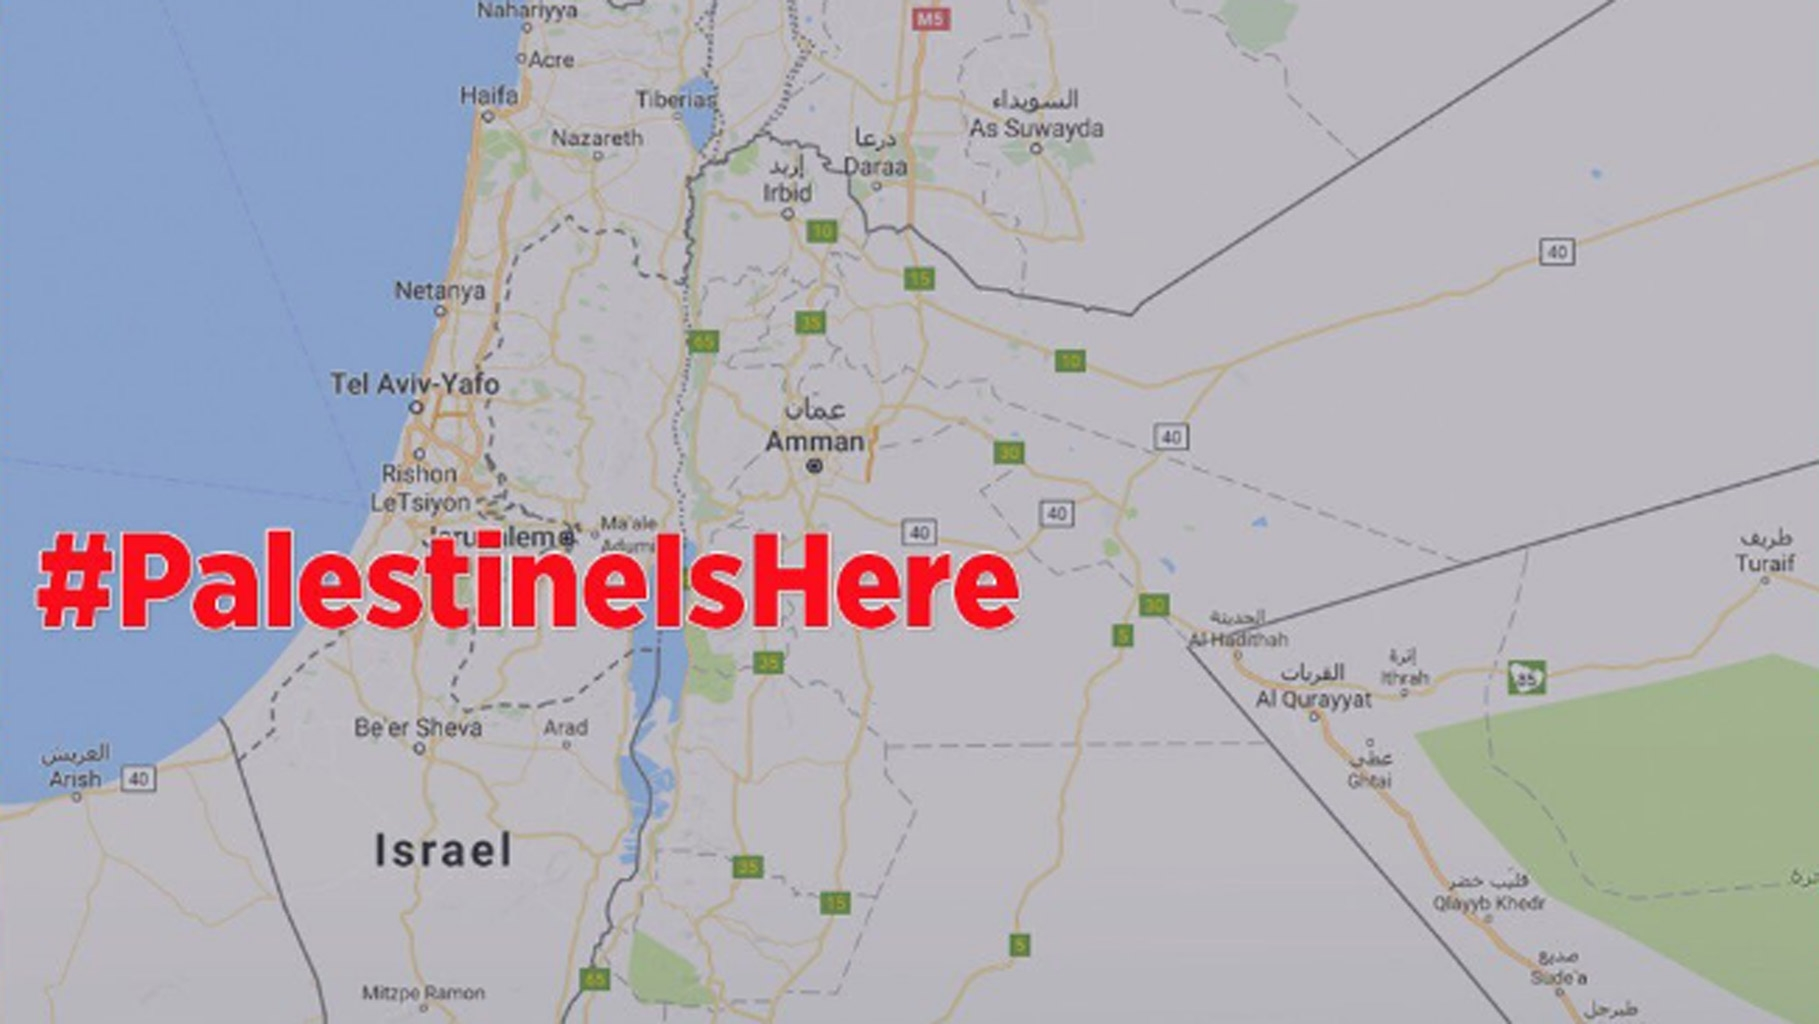 Mapping Palestine: How Google Chose to Not Label a Conflict ... on masada map google, guyana map google, hungary map google, nauru map google, swaziland map google, trinidad and tobago map google, venezuela map google, vatican city map google, anguilla map google, monaco map google, bermuda map google, belarus map google, arabian peninsula map google, congo map google, uzbekistan map google, corinth map google, byzantine empire map google, baghdad map google, cook islands map google, georgia map google,